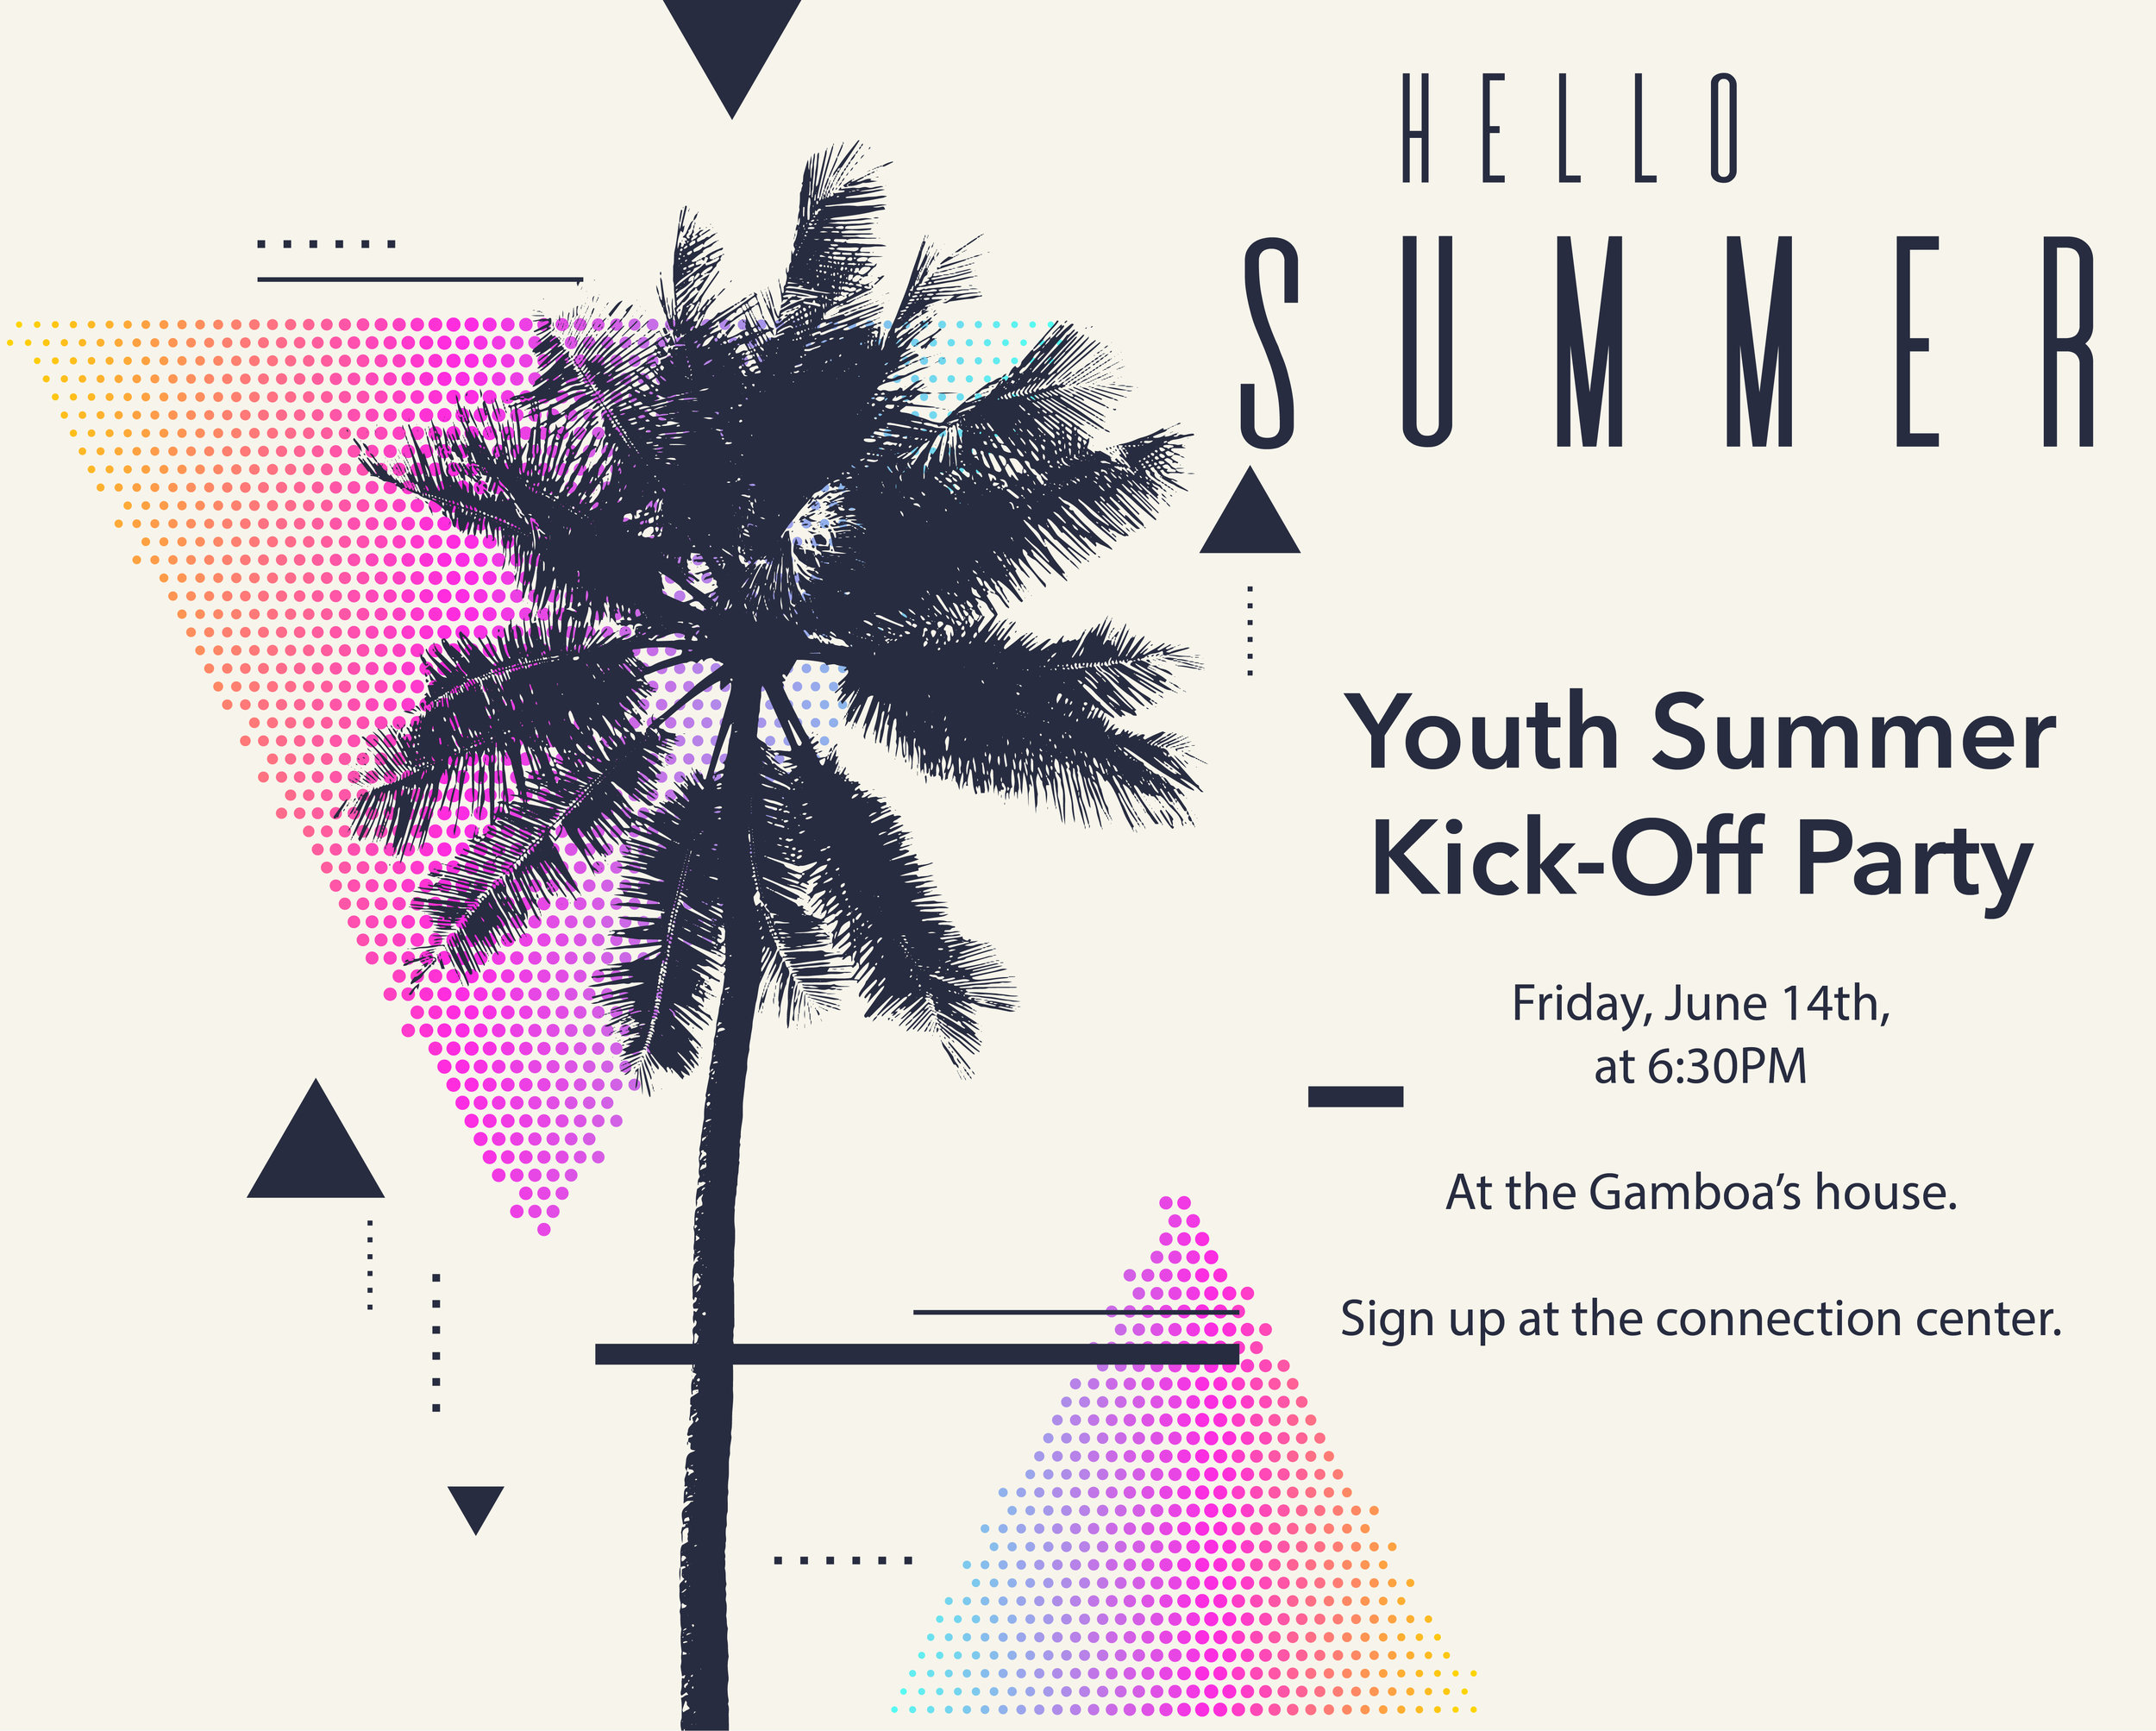 web_youth_summer_party.jpg